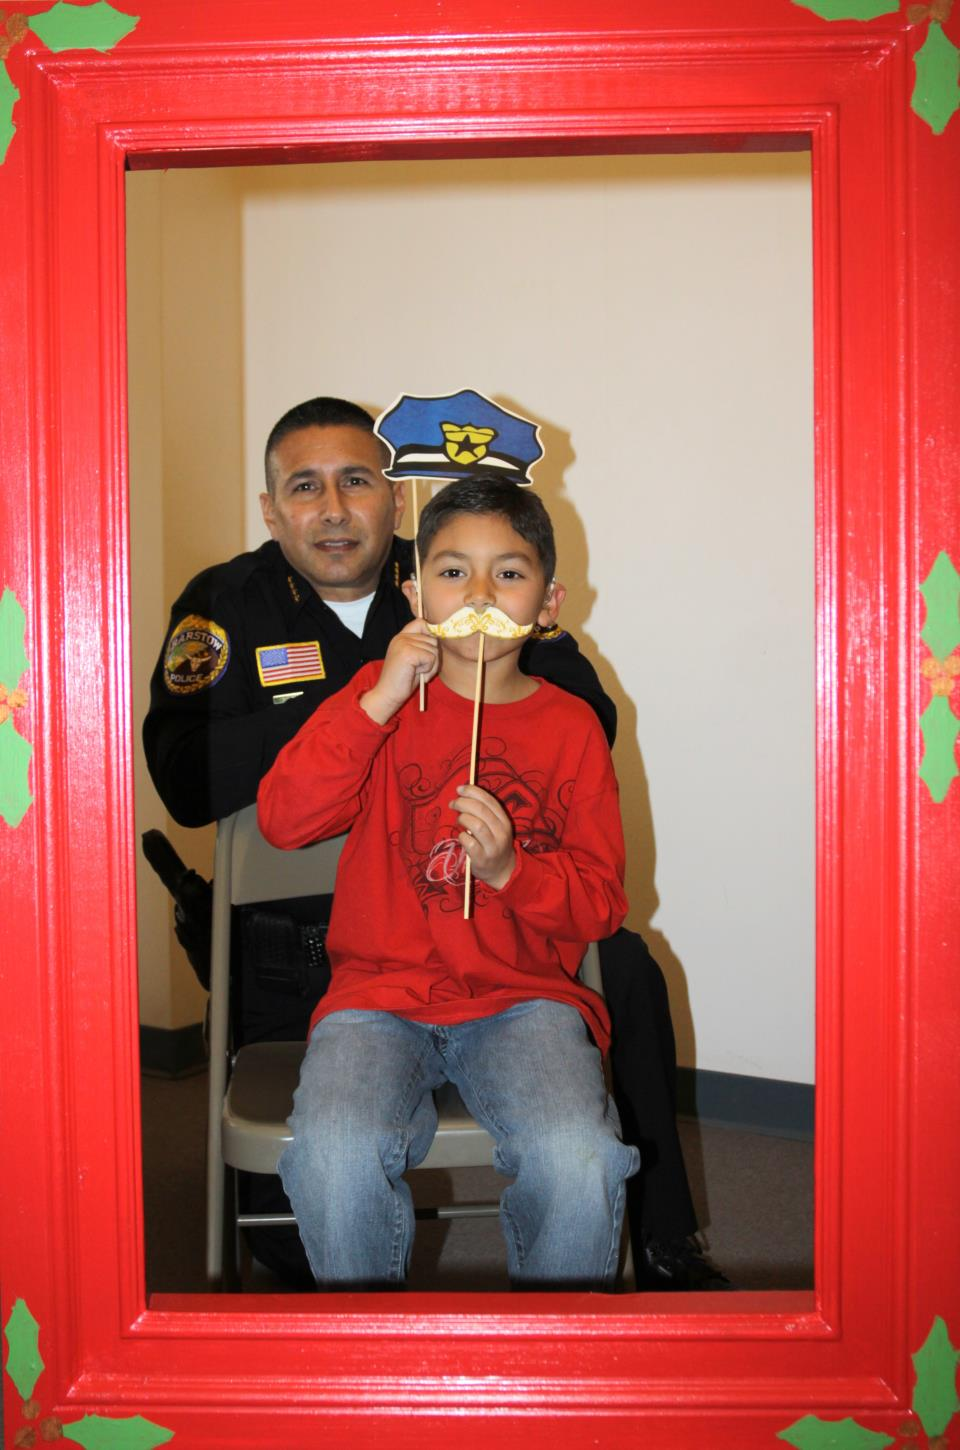 Chief Ramirez and PAL member pose for Christmas Photo